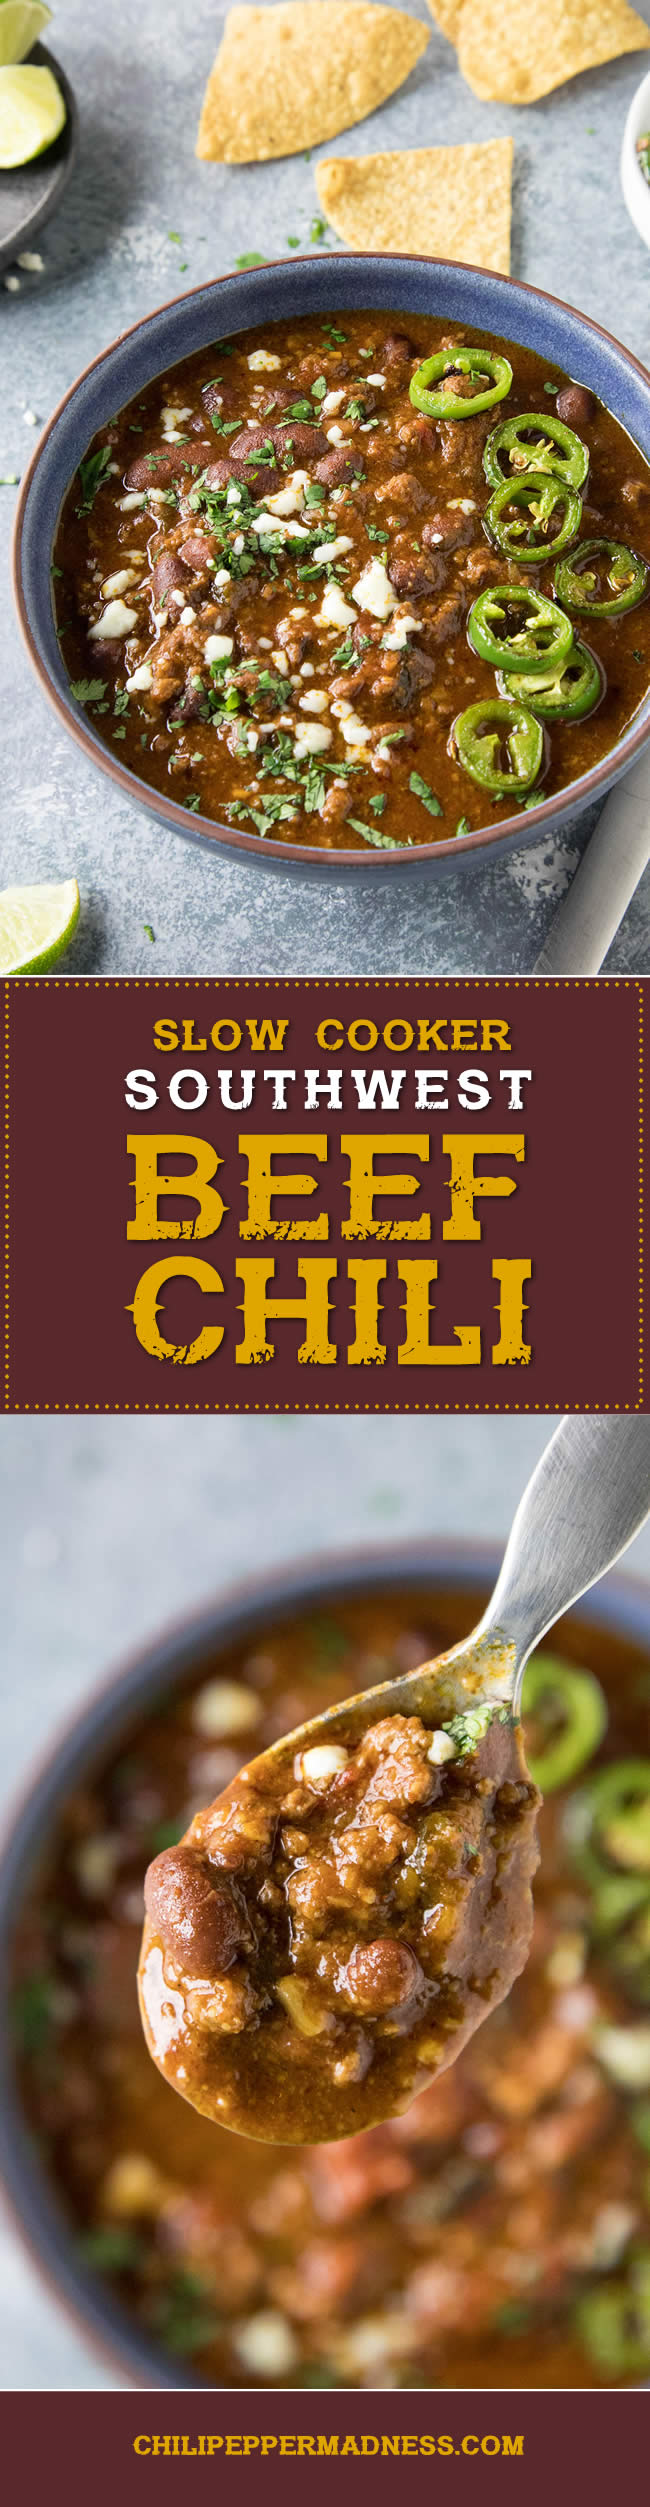 Slow Cooker Southwest Beef Chili - Recipe